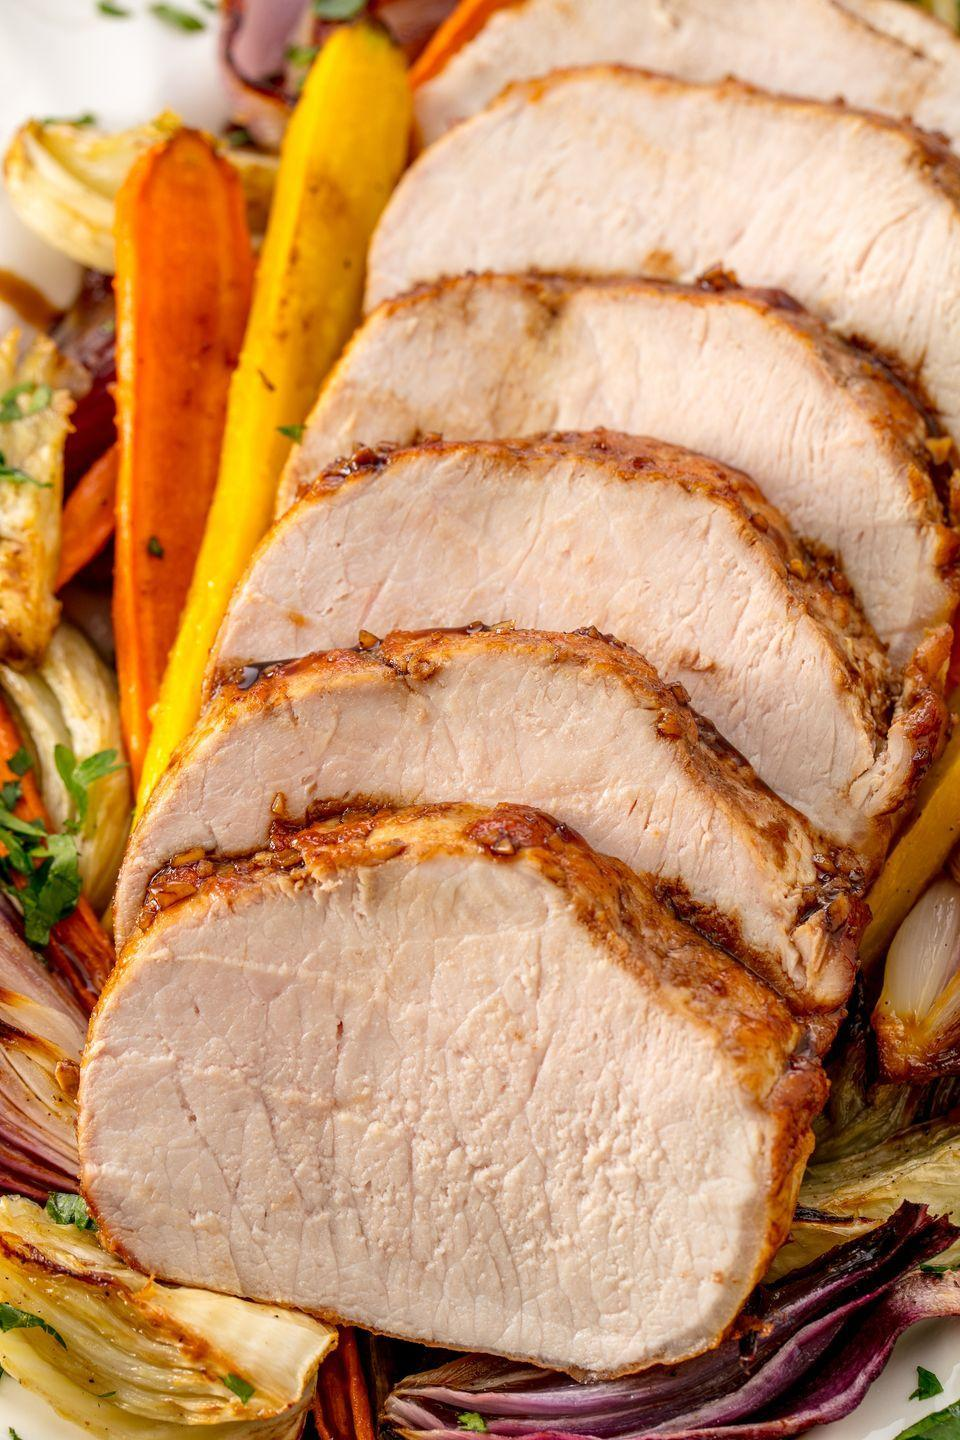 """<p>Set it and forget it while you cook the rest of your holiday meal.</p><p>Get the recipe from <a href=""""https://www.delish.com/cooking/recipe-ideas/recipes/a54791/crock-pot-pork-roast-recipe/"""" rel=""""nofollow noopener"""" target=""""_blank"""" data-ylk=""""slk:Delish"""" class=""""link rapid-noclick-resp"""">Delish</a>. </p>"""